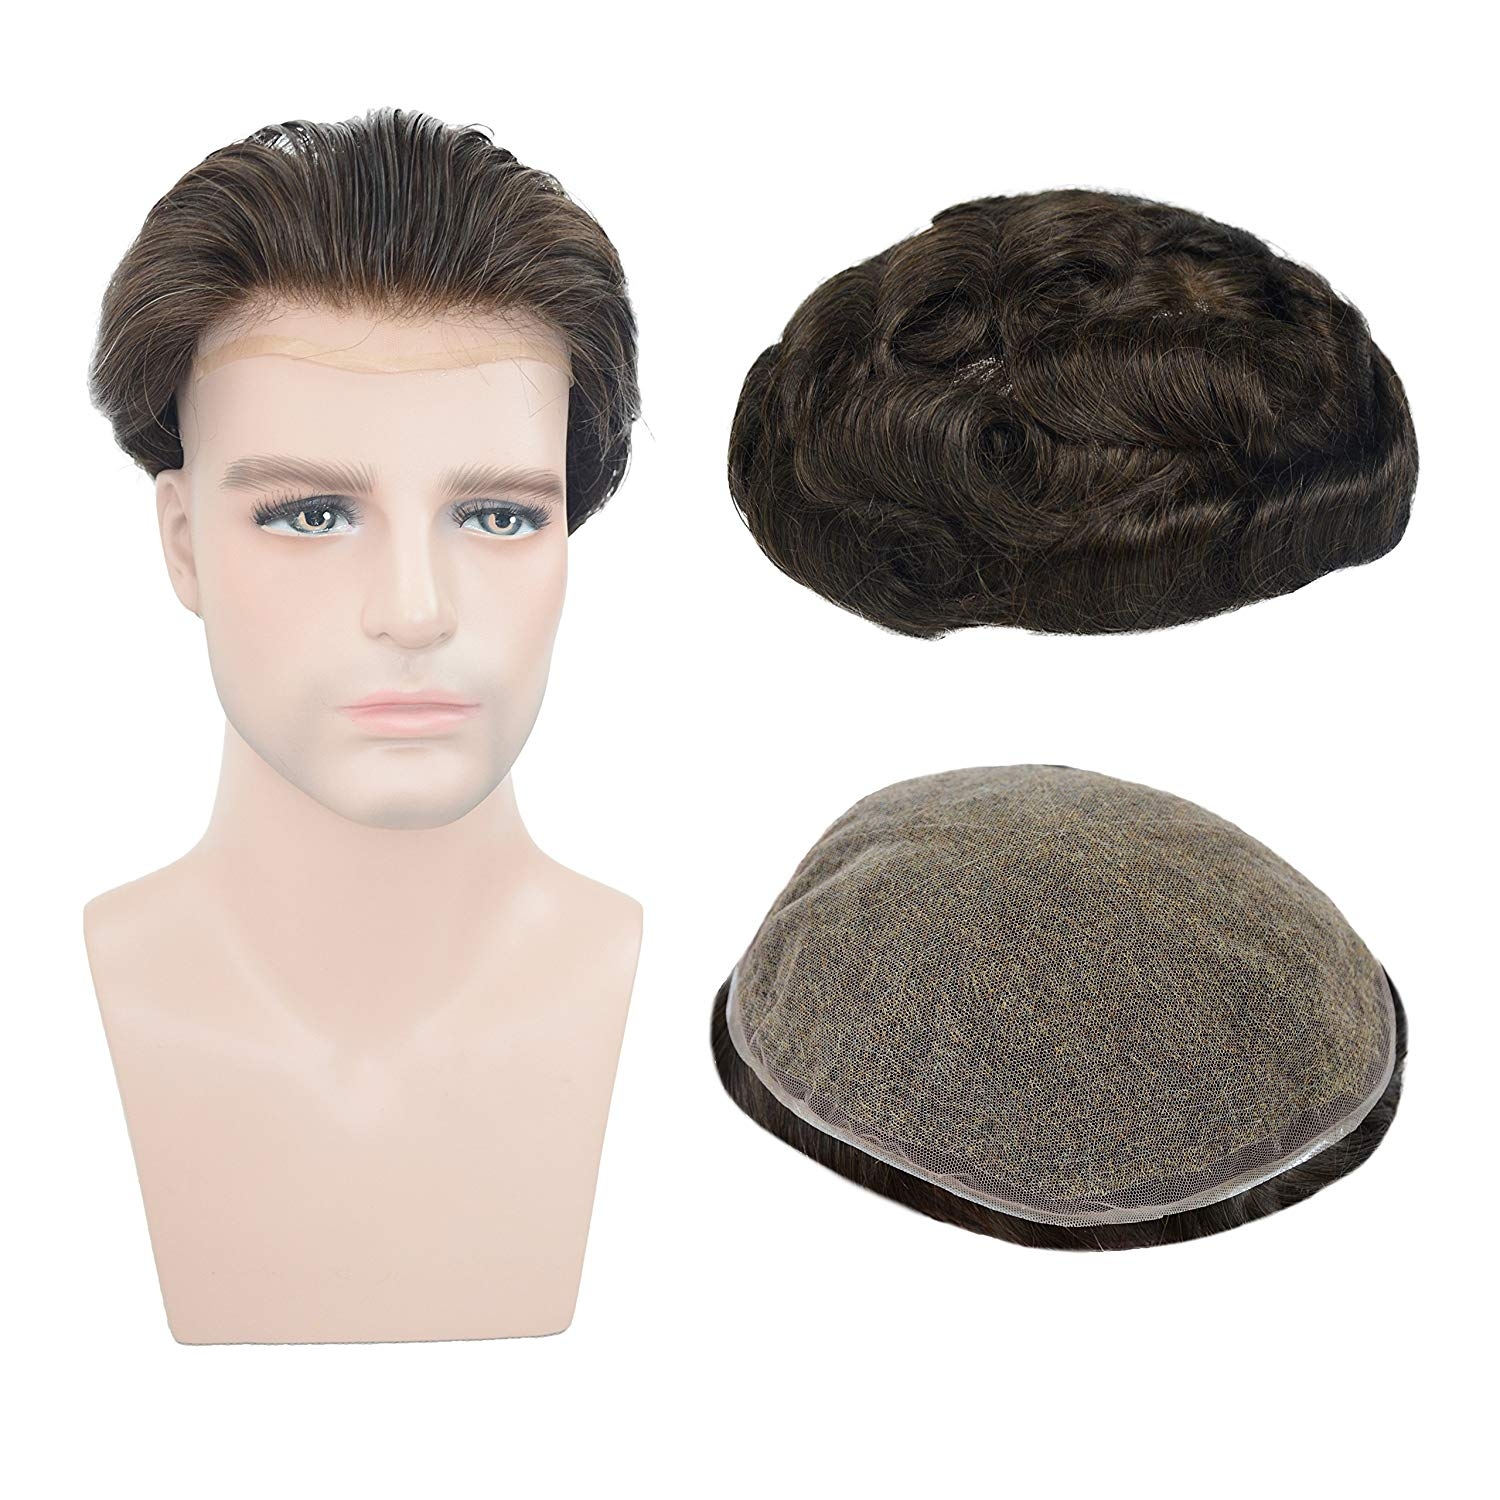 European Virgin Human Hair Dark Brown Full Lace Base Man Toupee